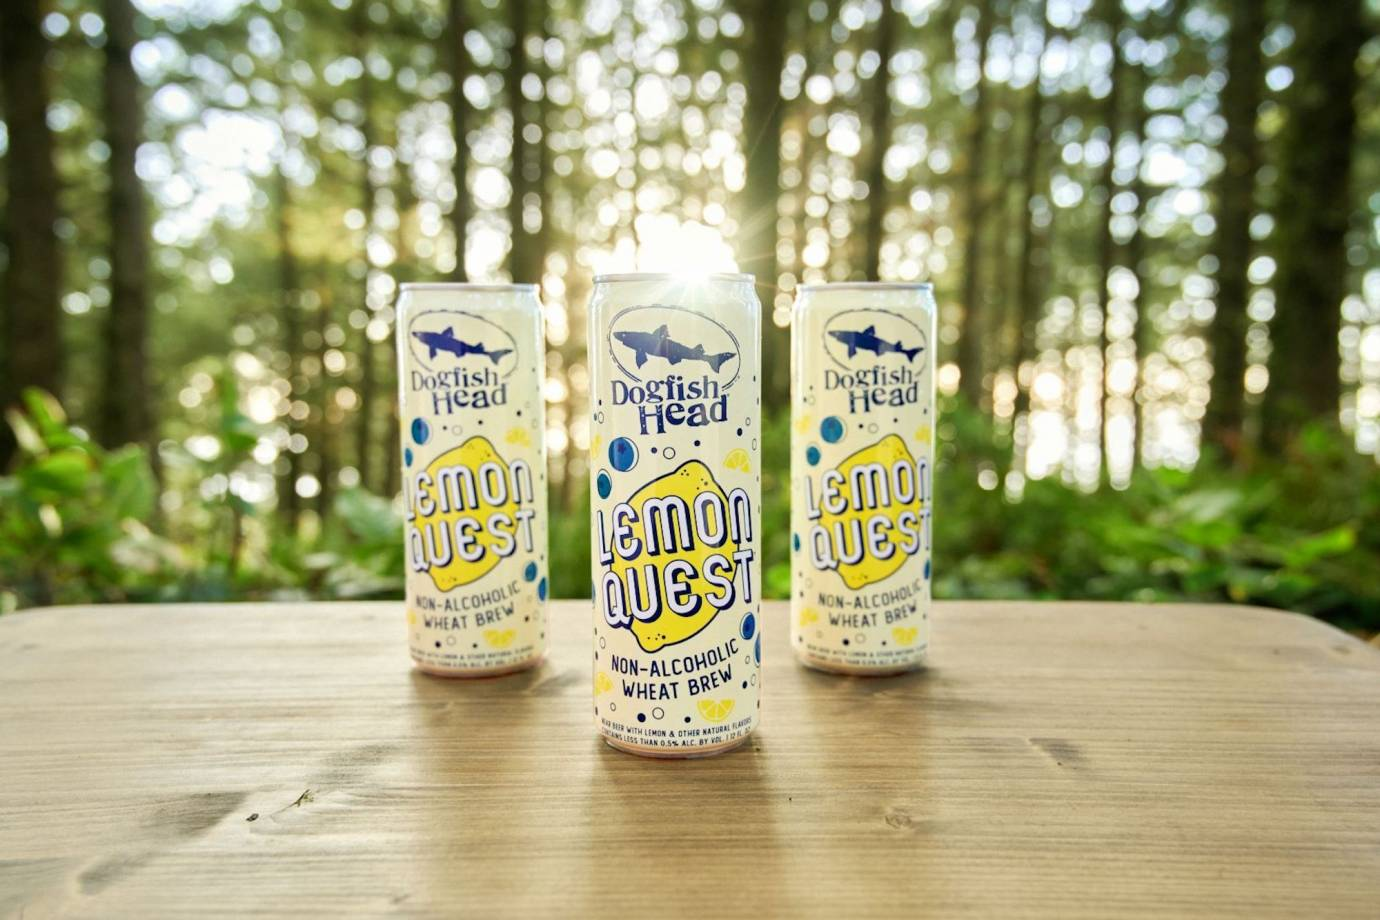 Lemon Quest Beer Cans in the outdoors